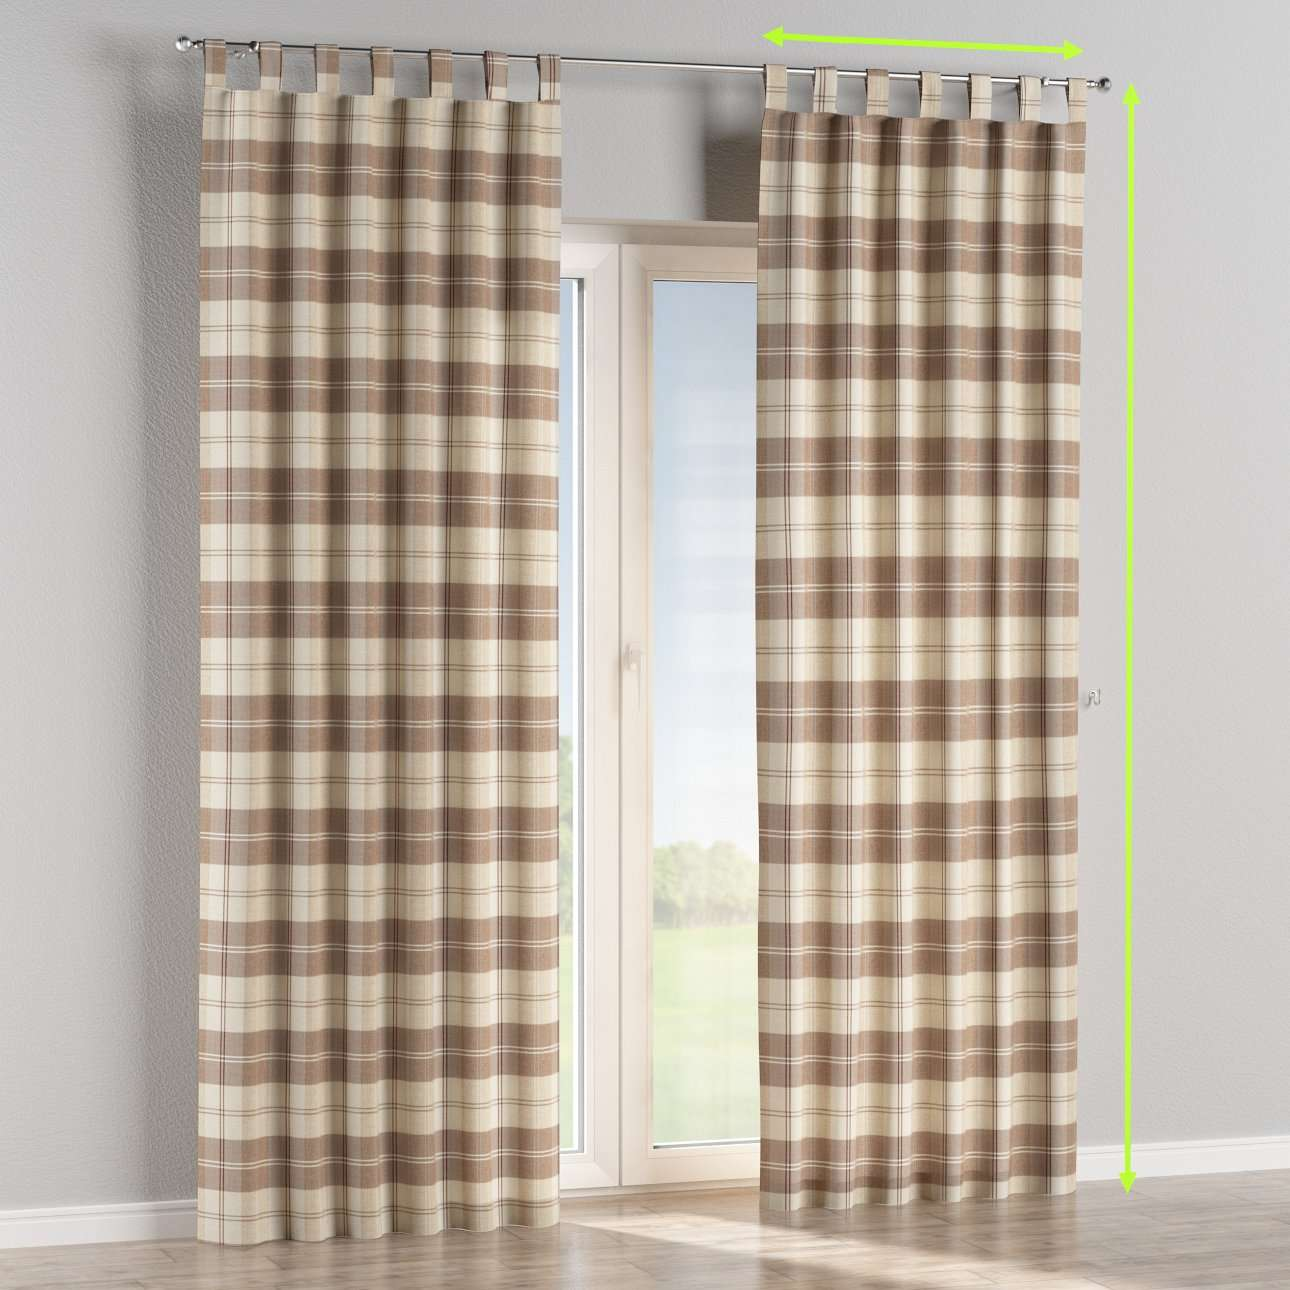 Tab top curtains in collection Edinburgh, fabric: 115-80